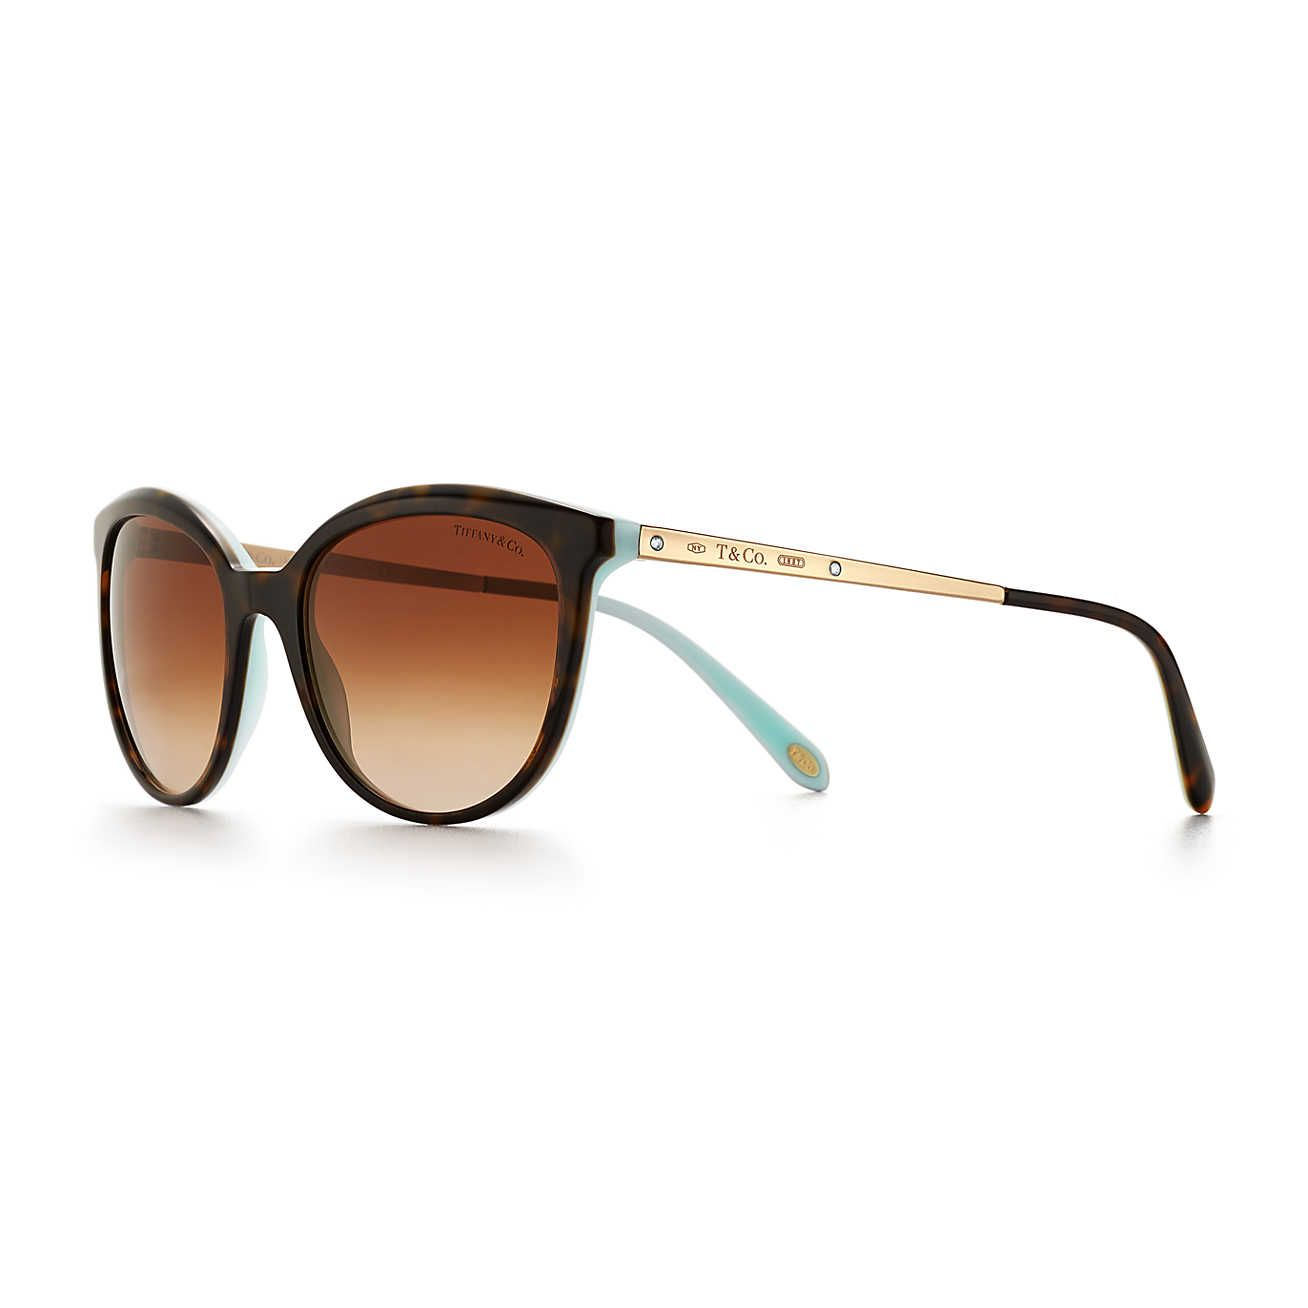 6bd88859753d Tiffany 1837® phantos sunglasses in tortoise and Tiffany Blue® acetate.